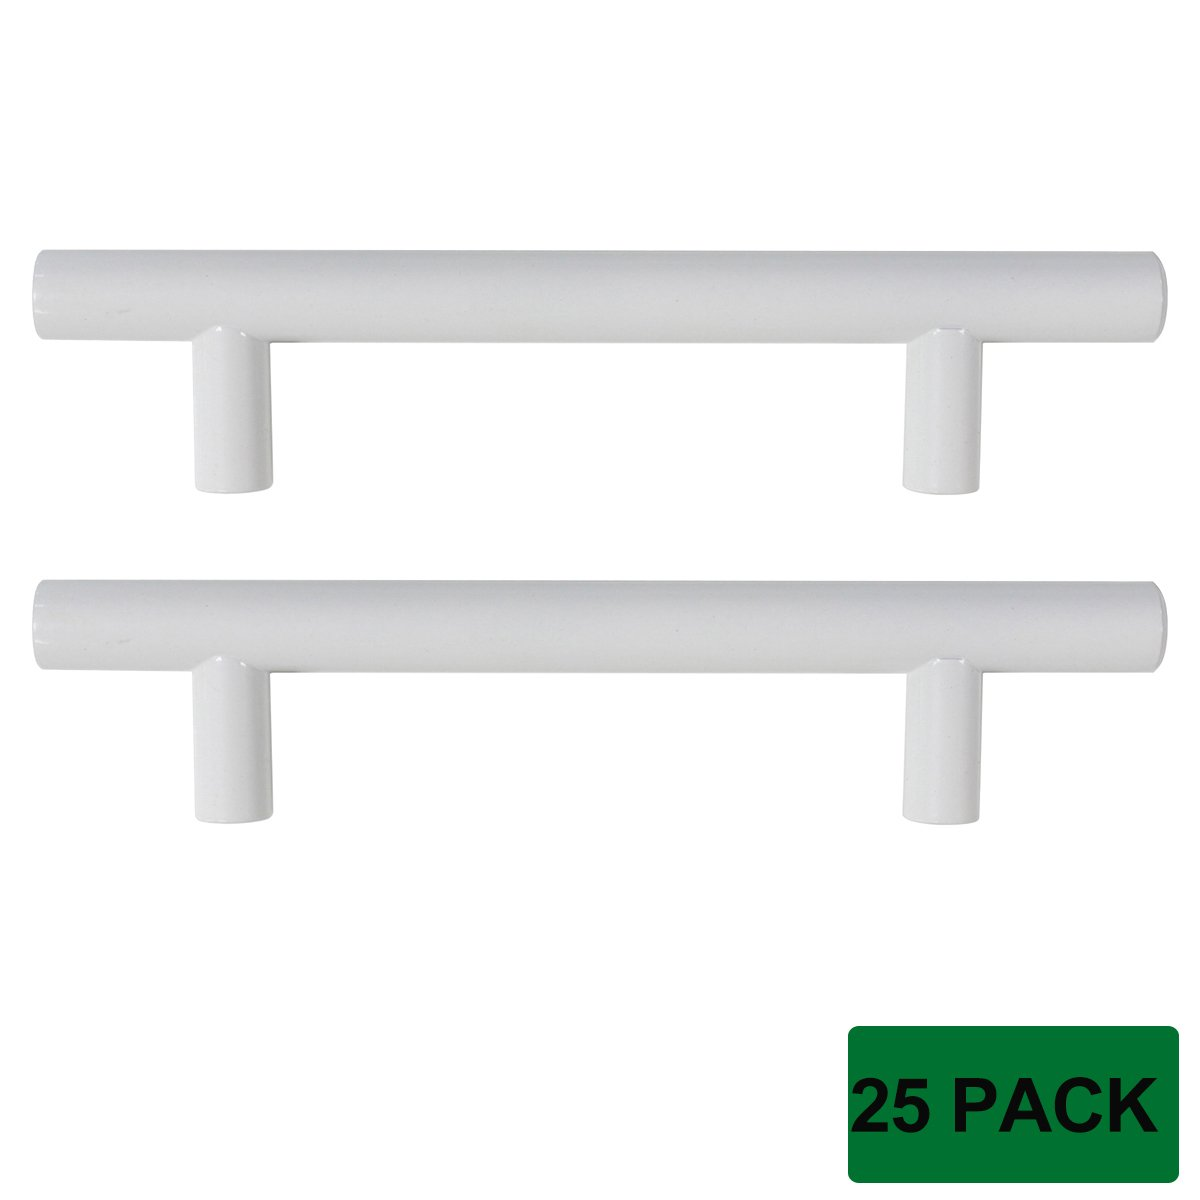 """Probrico Modern Kitchen Handle Pull Cabinet Drawer T Bar Knobs and Pull Handles White - 3-3/4"""" Hole Centers - 25 Pack"""